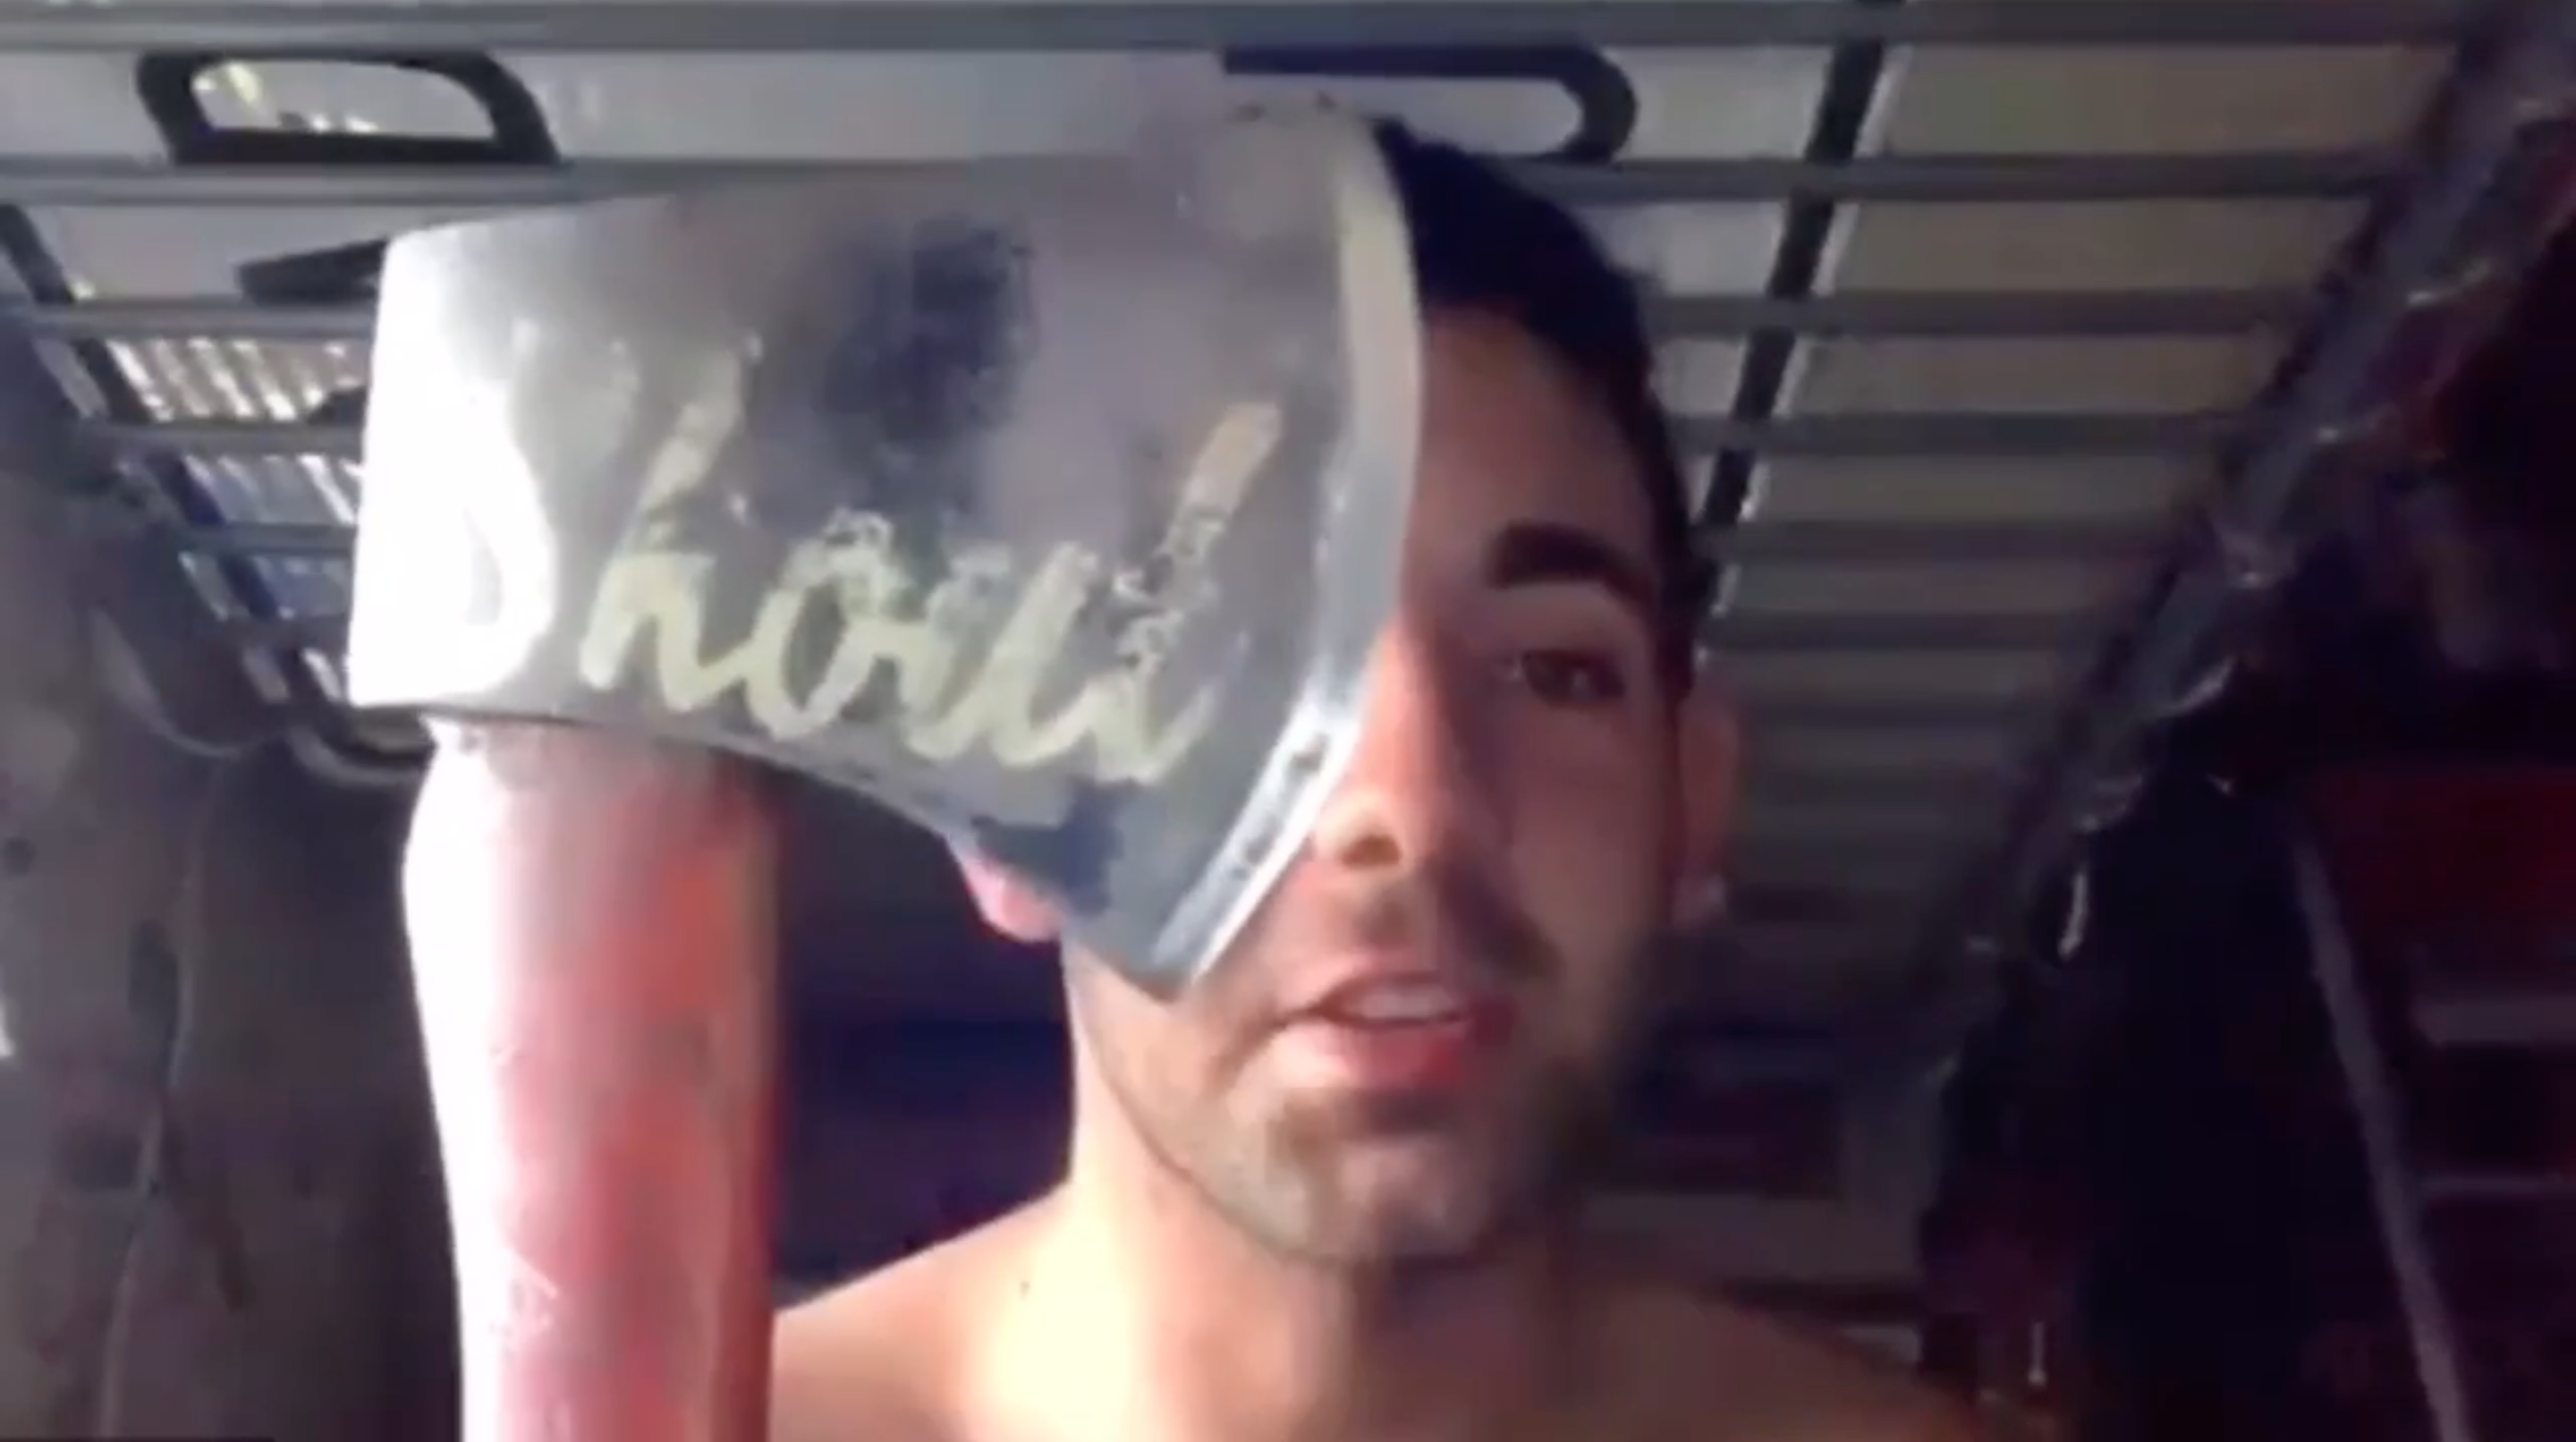 Zoom Chronicles: Guy Sharpens a Hatchet Shirtless